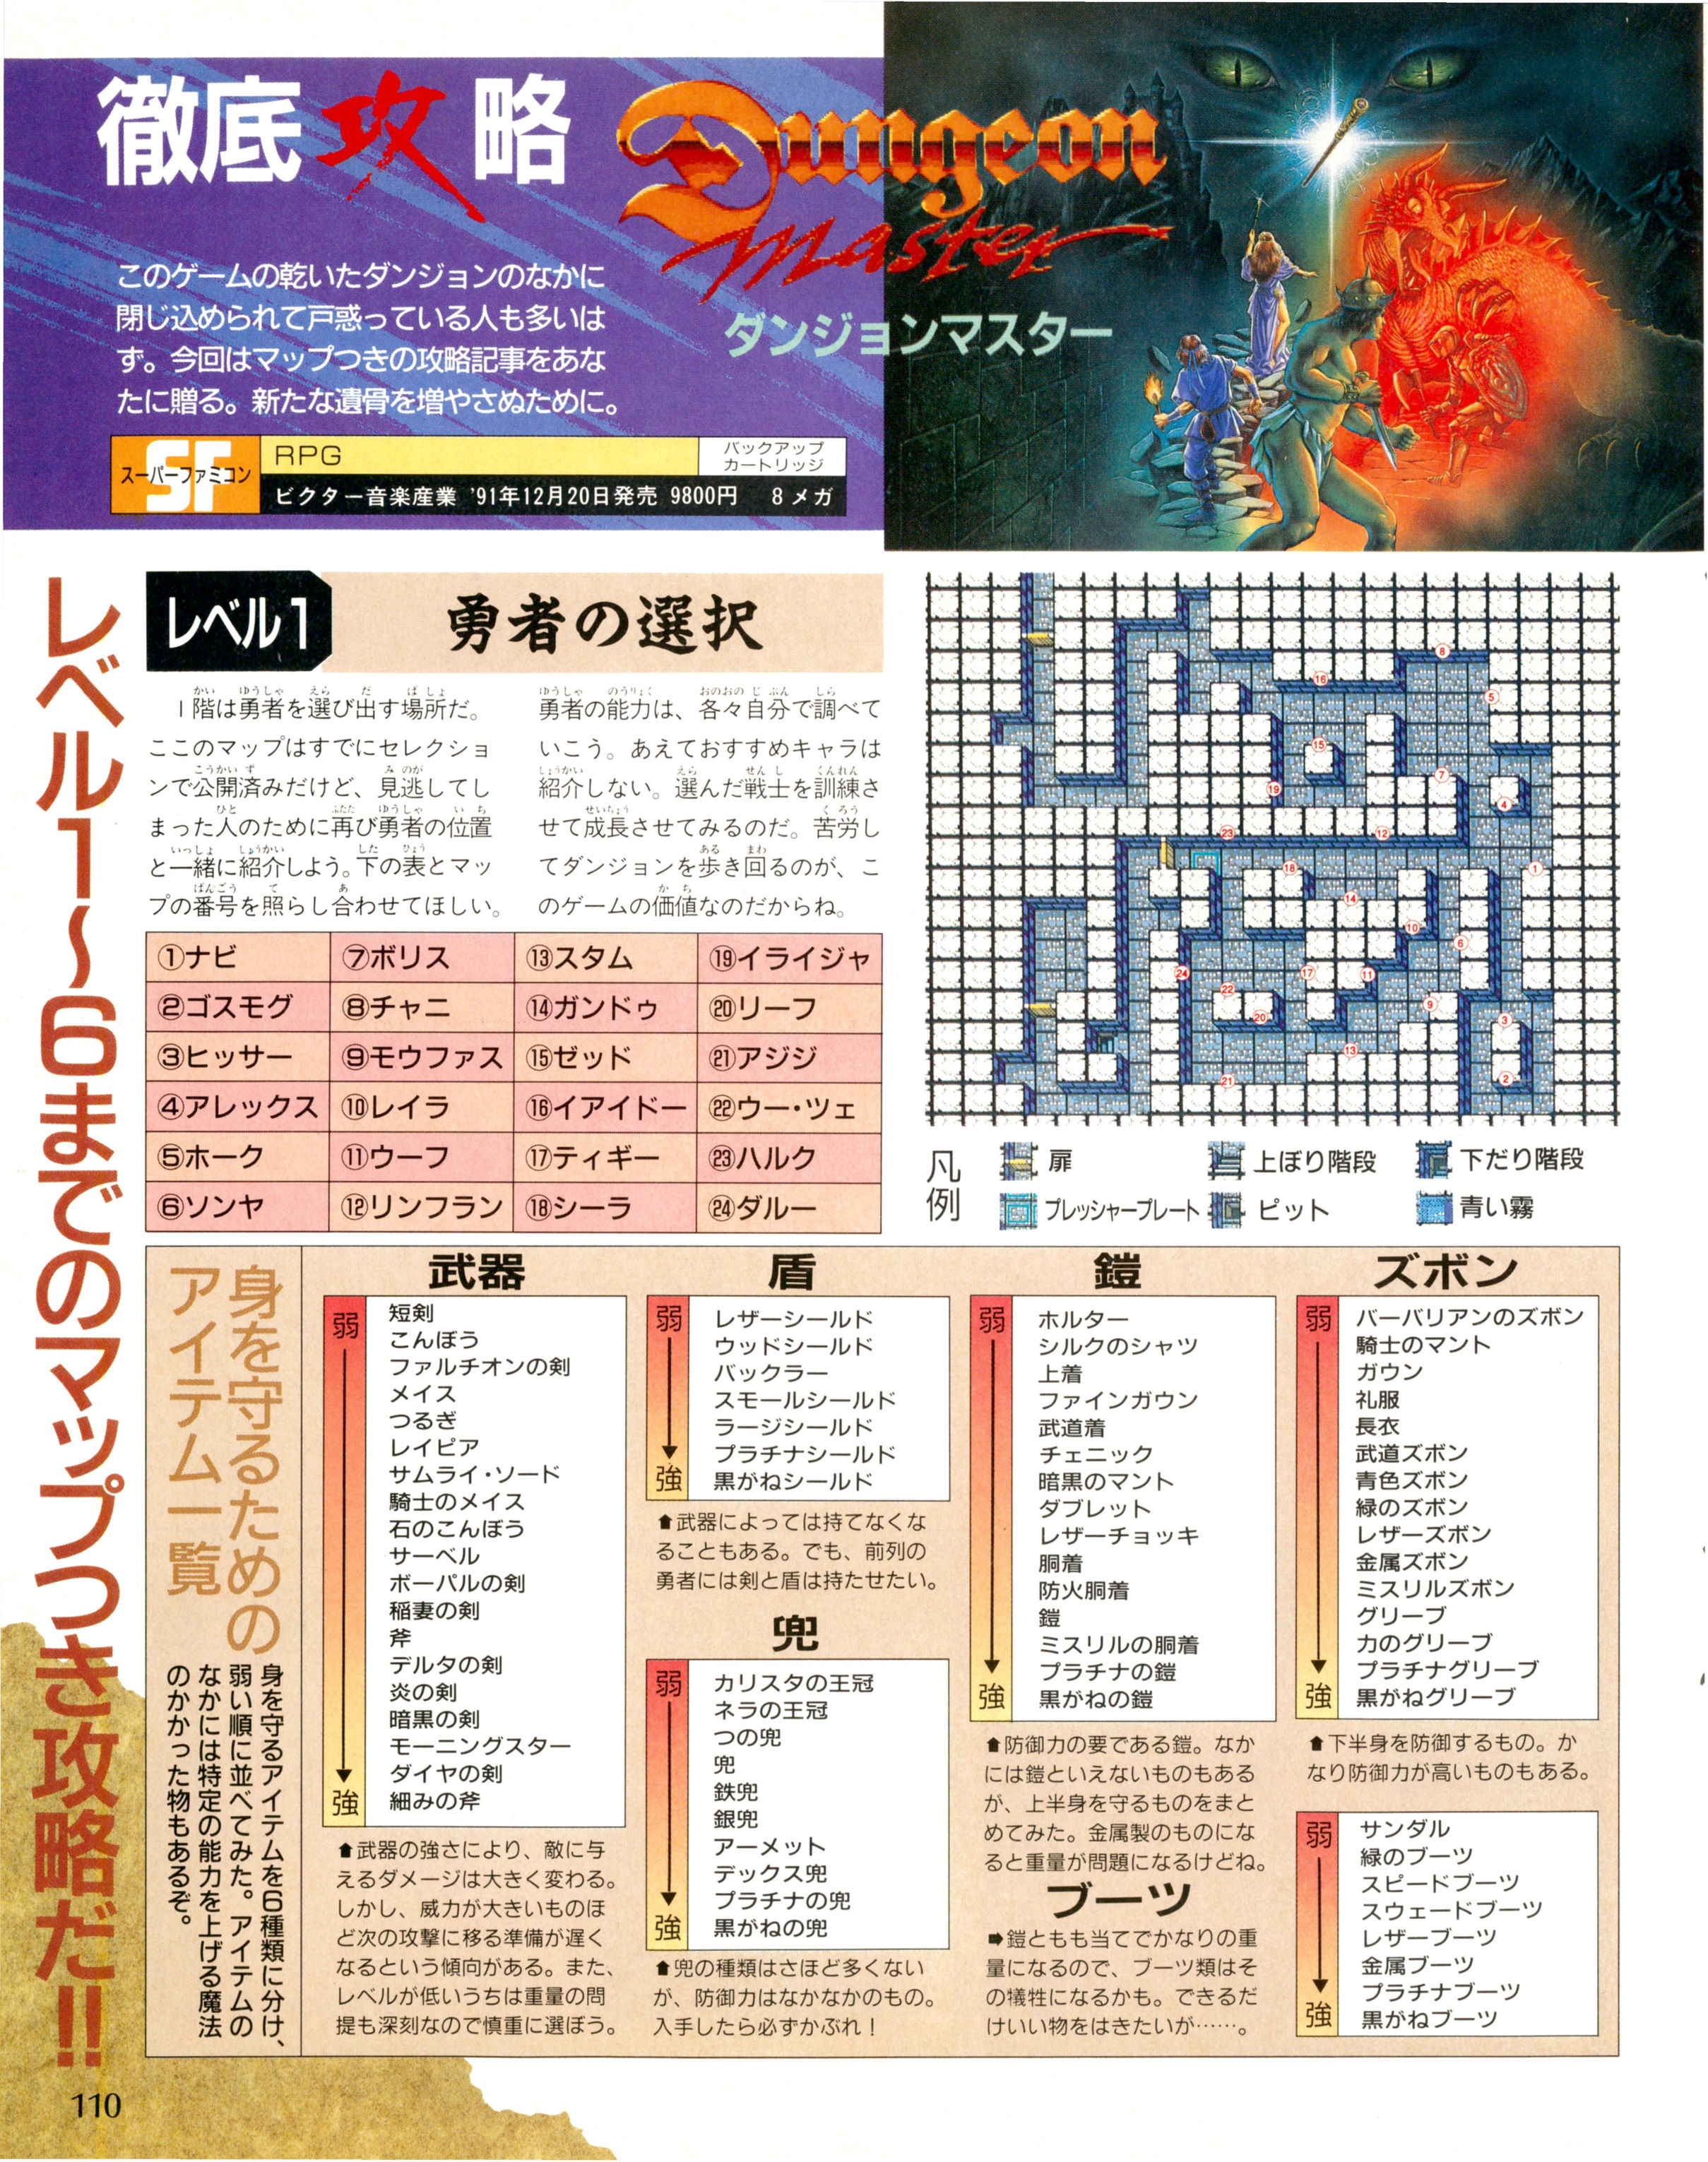 Dungeon Master for Super Famicom Guide published in Japanese magazine 'Famitsu', Issue #159 03 January 1992, Page 110